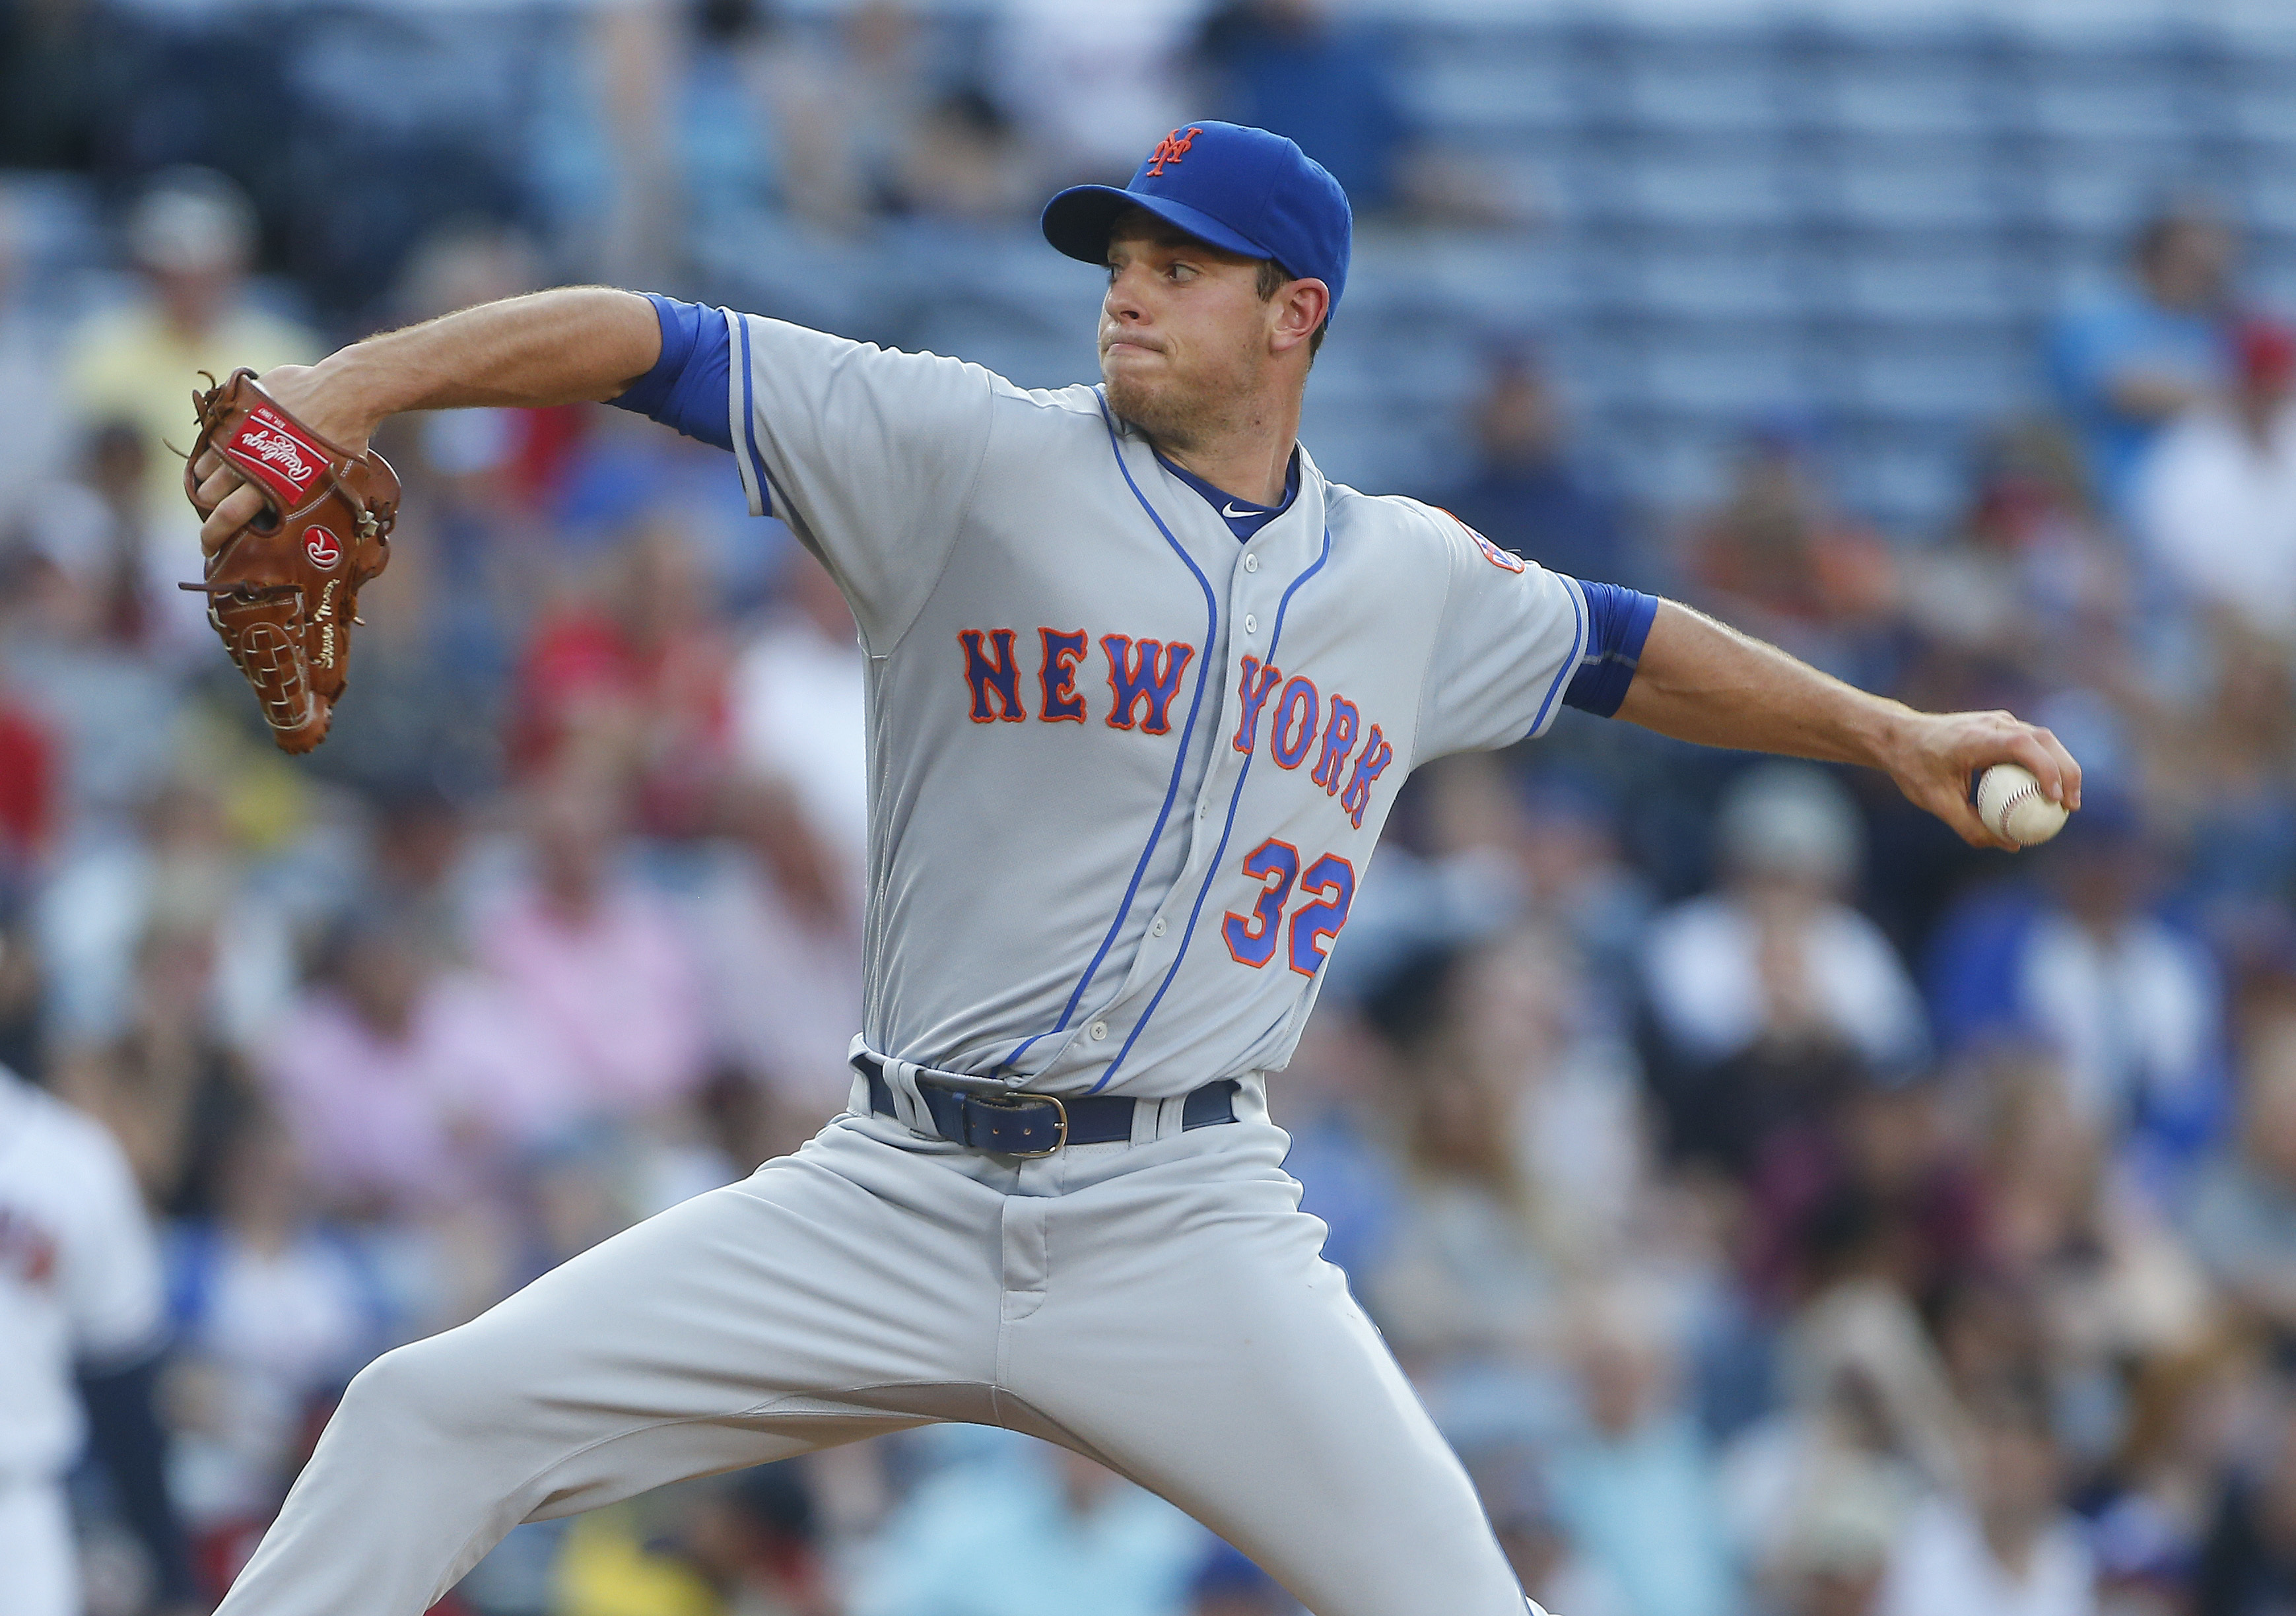 New York Mets starting pitcher Steven Matz delivers against the Atlanta Braves in the first inning of a baseball game Friday, June 24, 2016, in Atlanta. (AP Photo/John Bazemore)